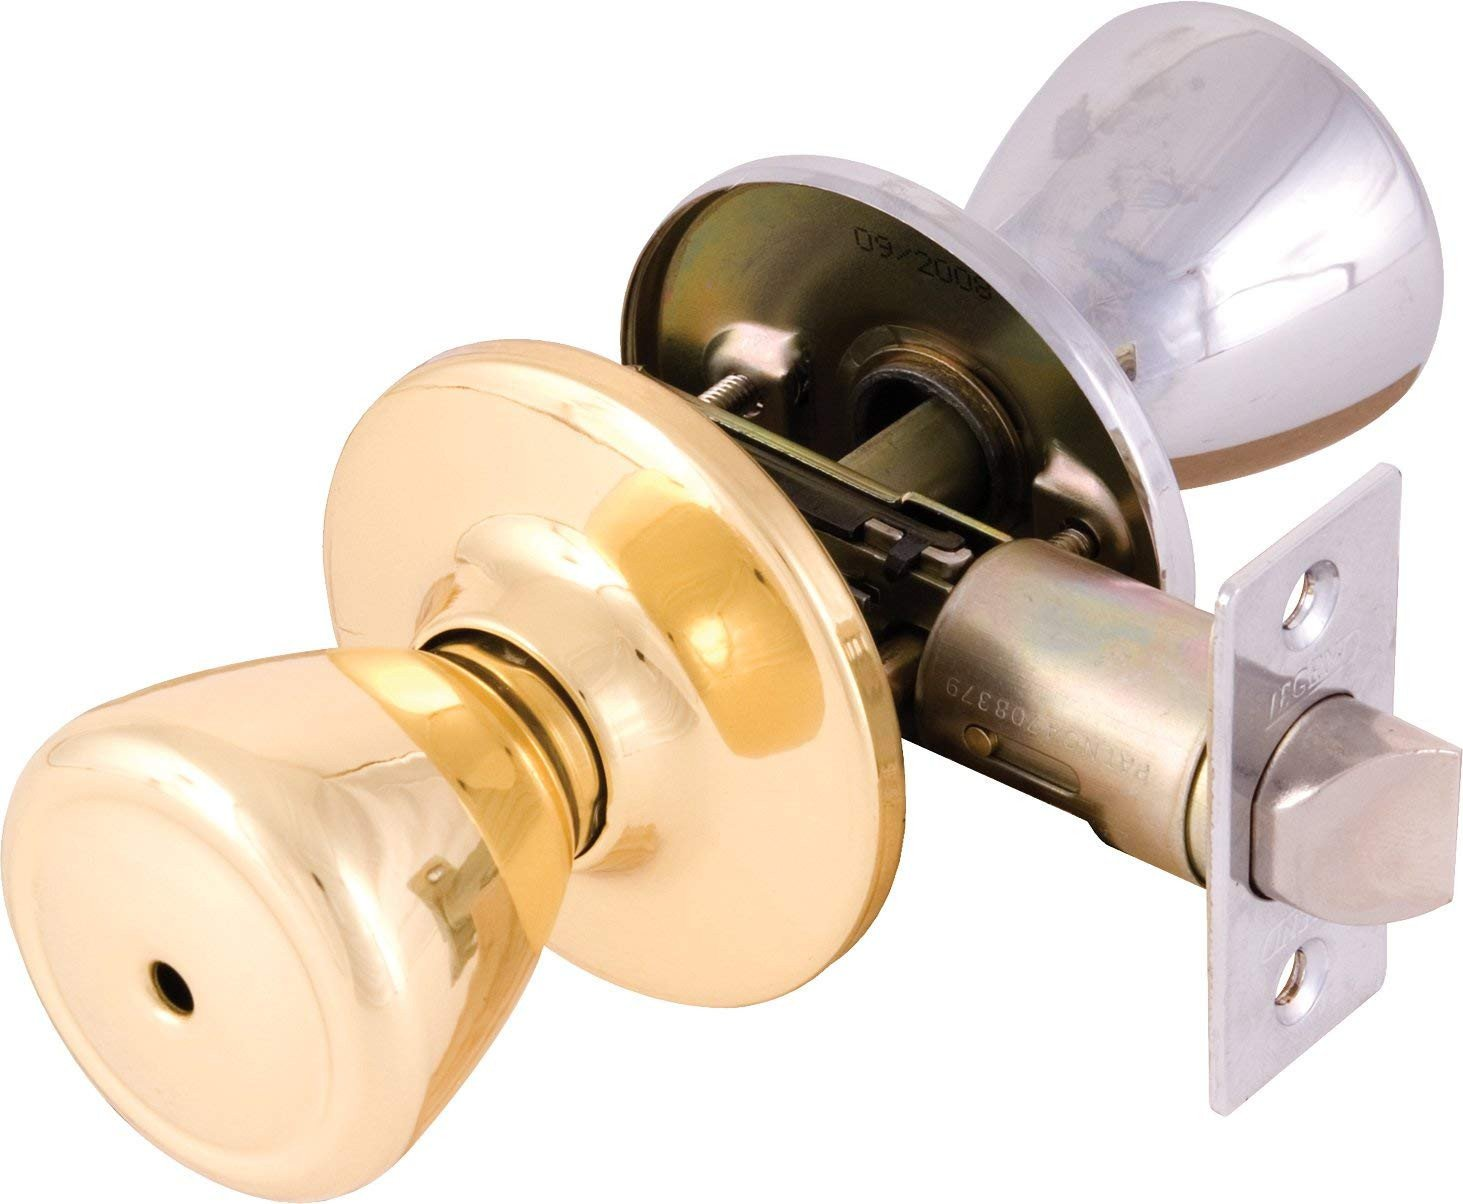 Bedroom Door Handle with Lock Inspirational Legend Tulip Style Door Knob Privacy Bed and Bath Lockset E Side Polished Brass E Side Chrome Us26 Chrome Us3 Polished Brass Finish